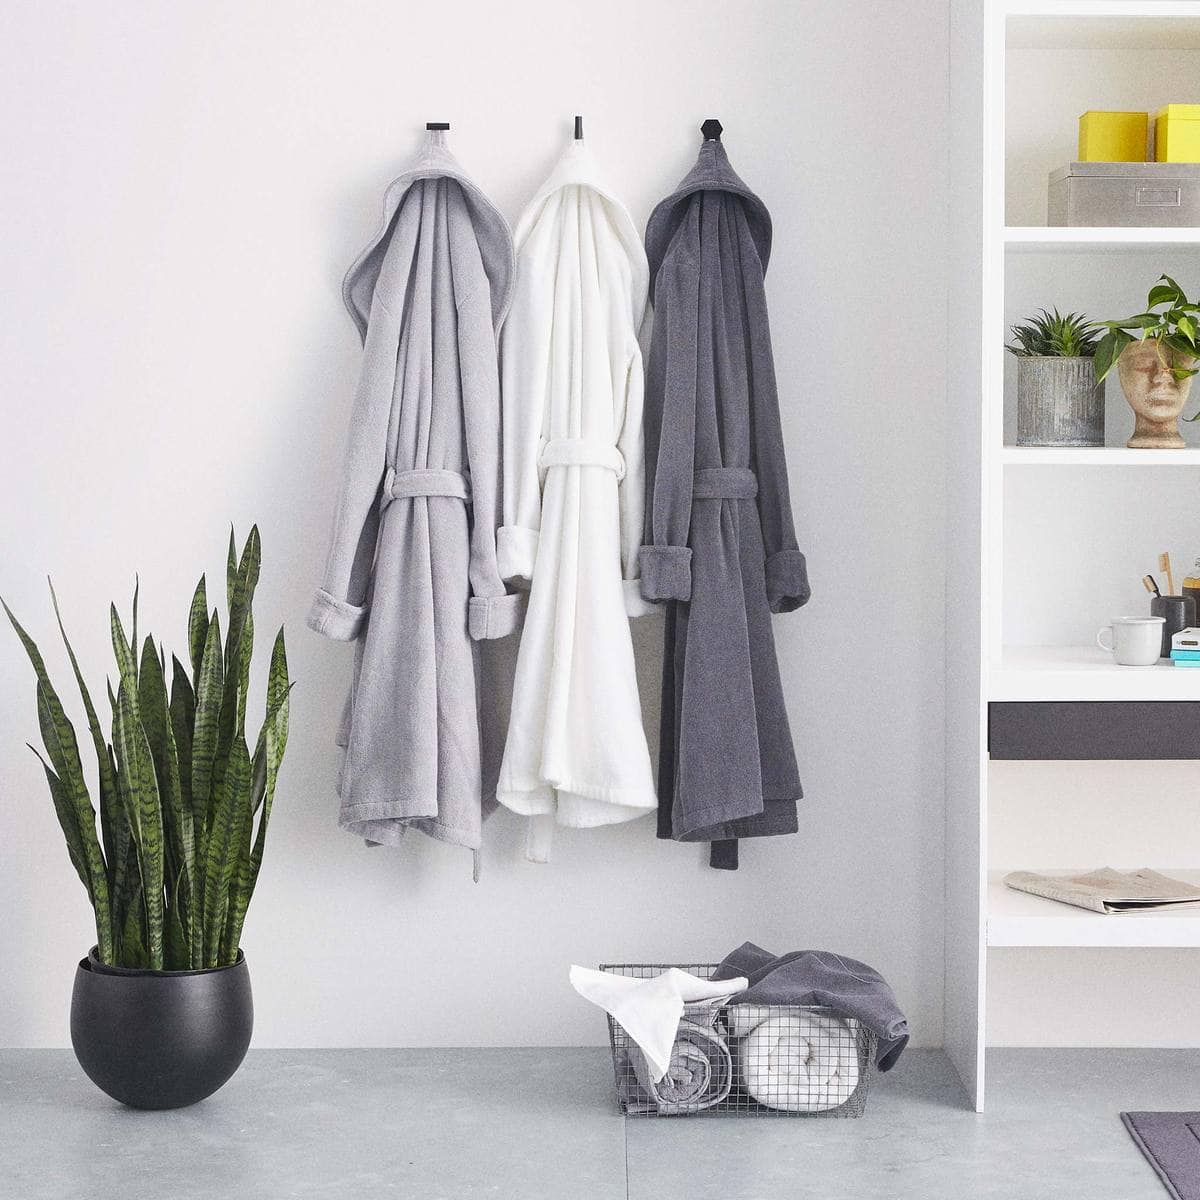 robes hanging on wall